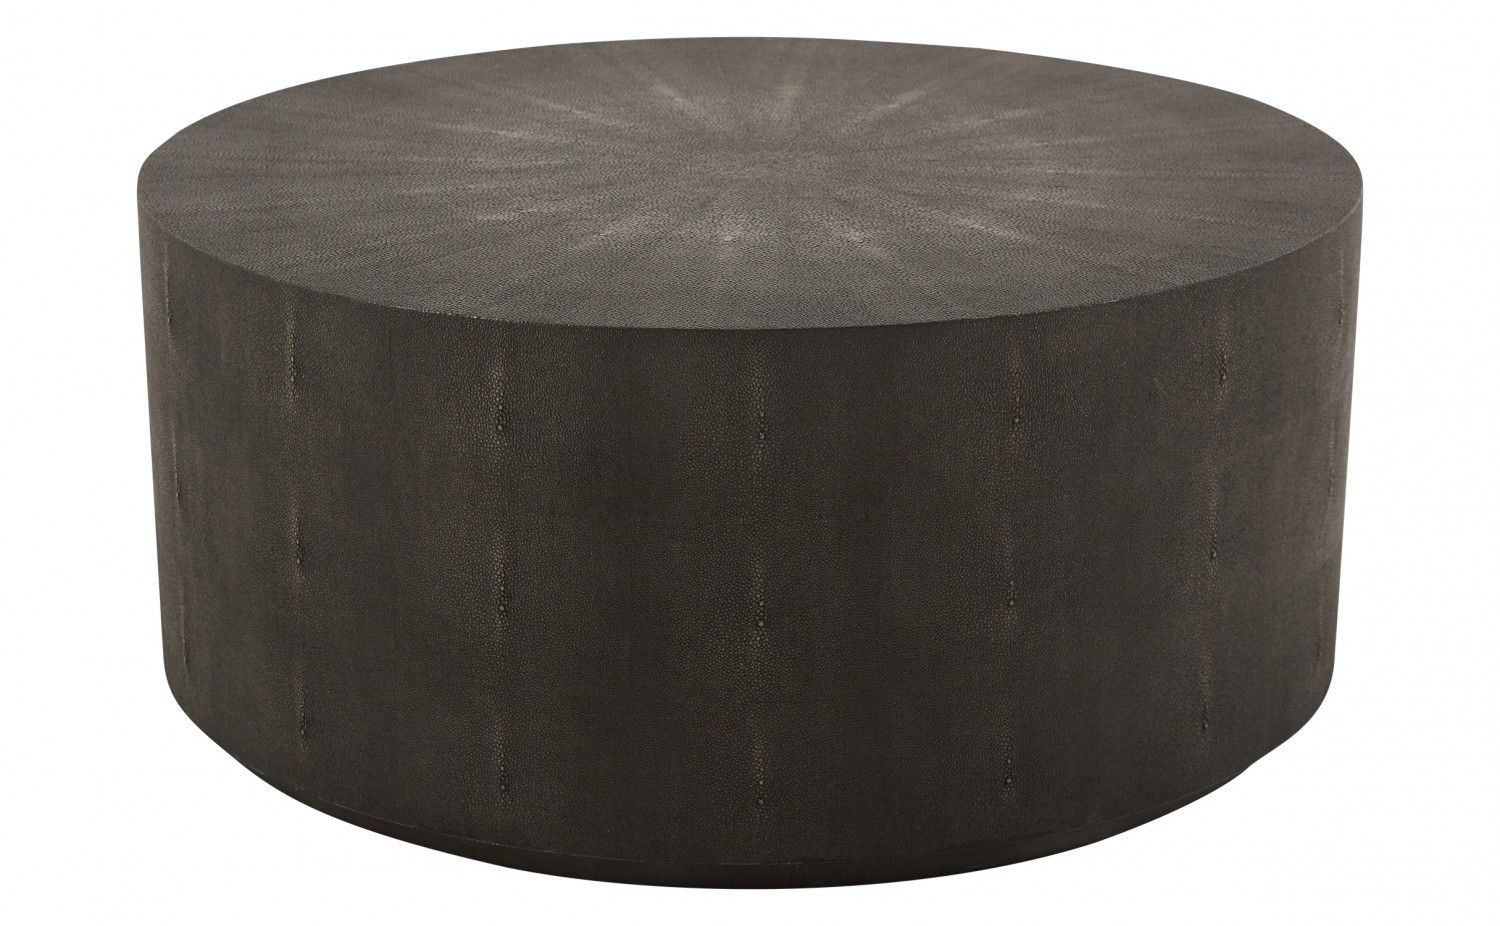 "Our Copeland Cocktail Table features a handsome faux shagreen finish. Square shagreen tiles are applied to the vertical surface of our Copeland, while the top is applied in a starburst pattern. At a height of only 16 inches, the intricate pattern can really be appreciated. We think our Copeland Cocktail Table would be perfectly juxtaposed with an angular sectional sofa.    •36"" diameter x 16""H  •charcoal faux shagreen  •charcoal wood base"